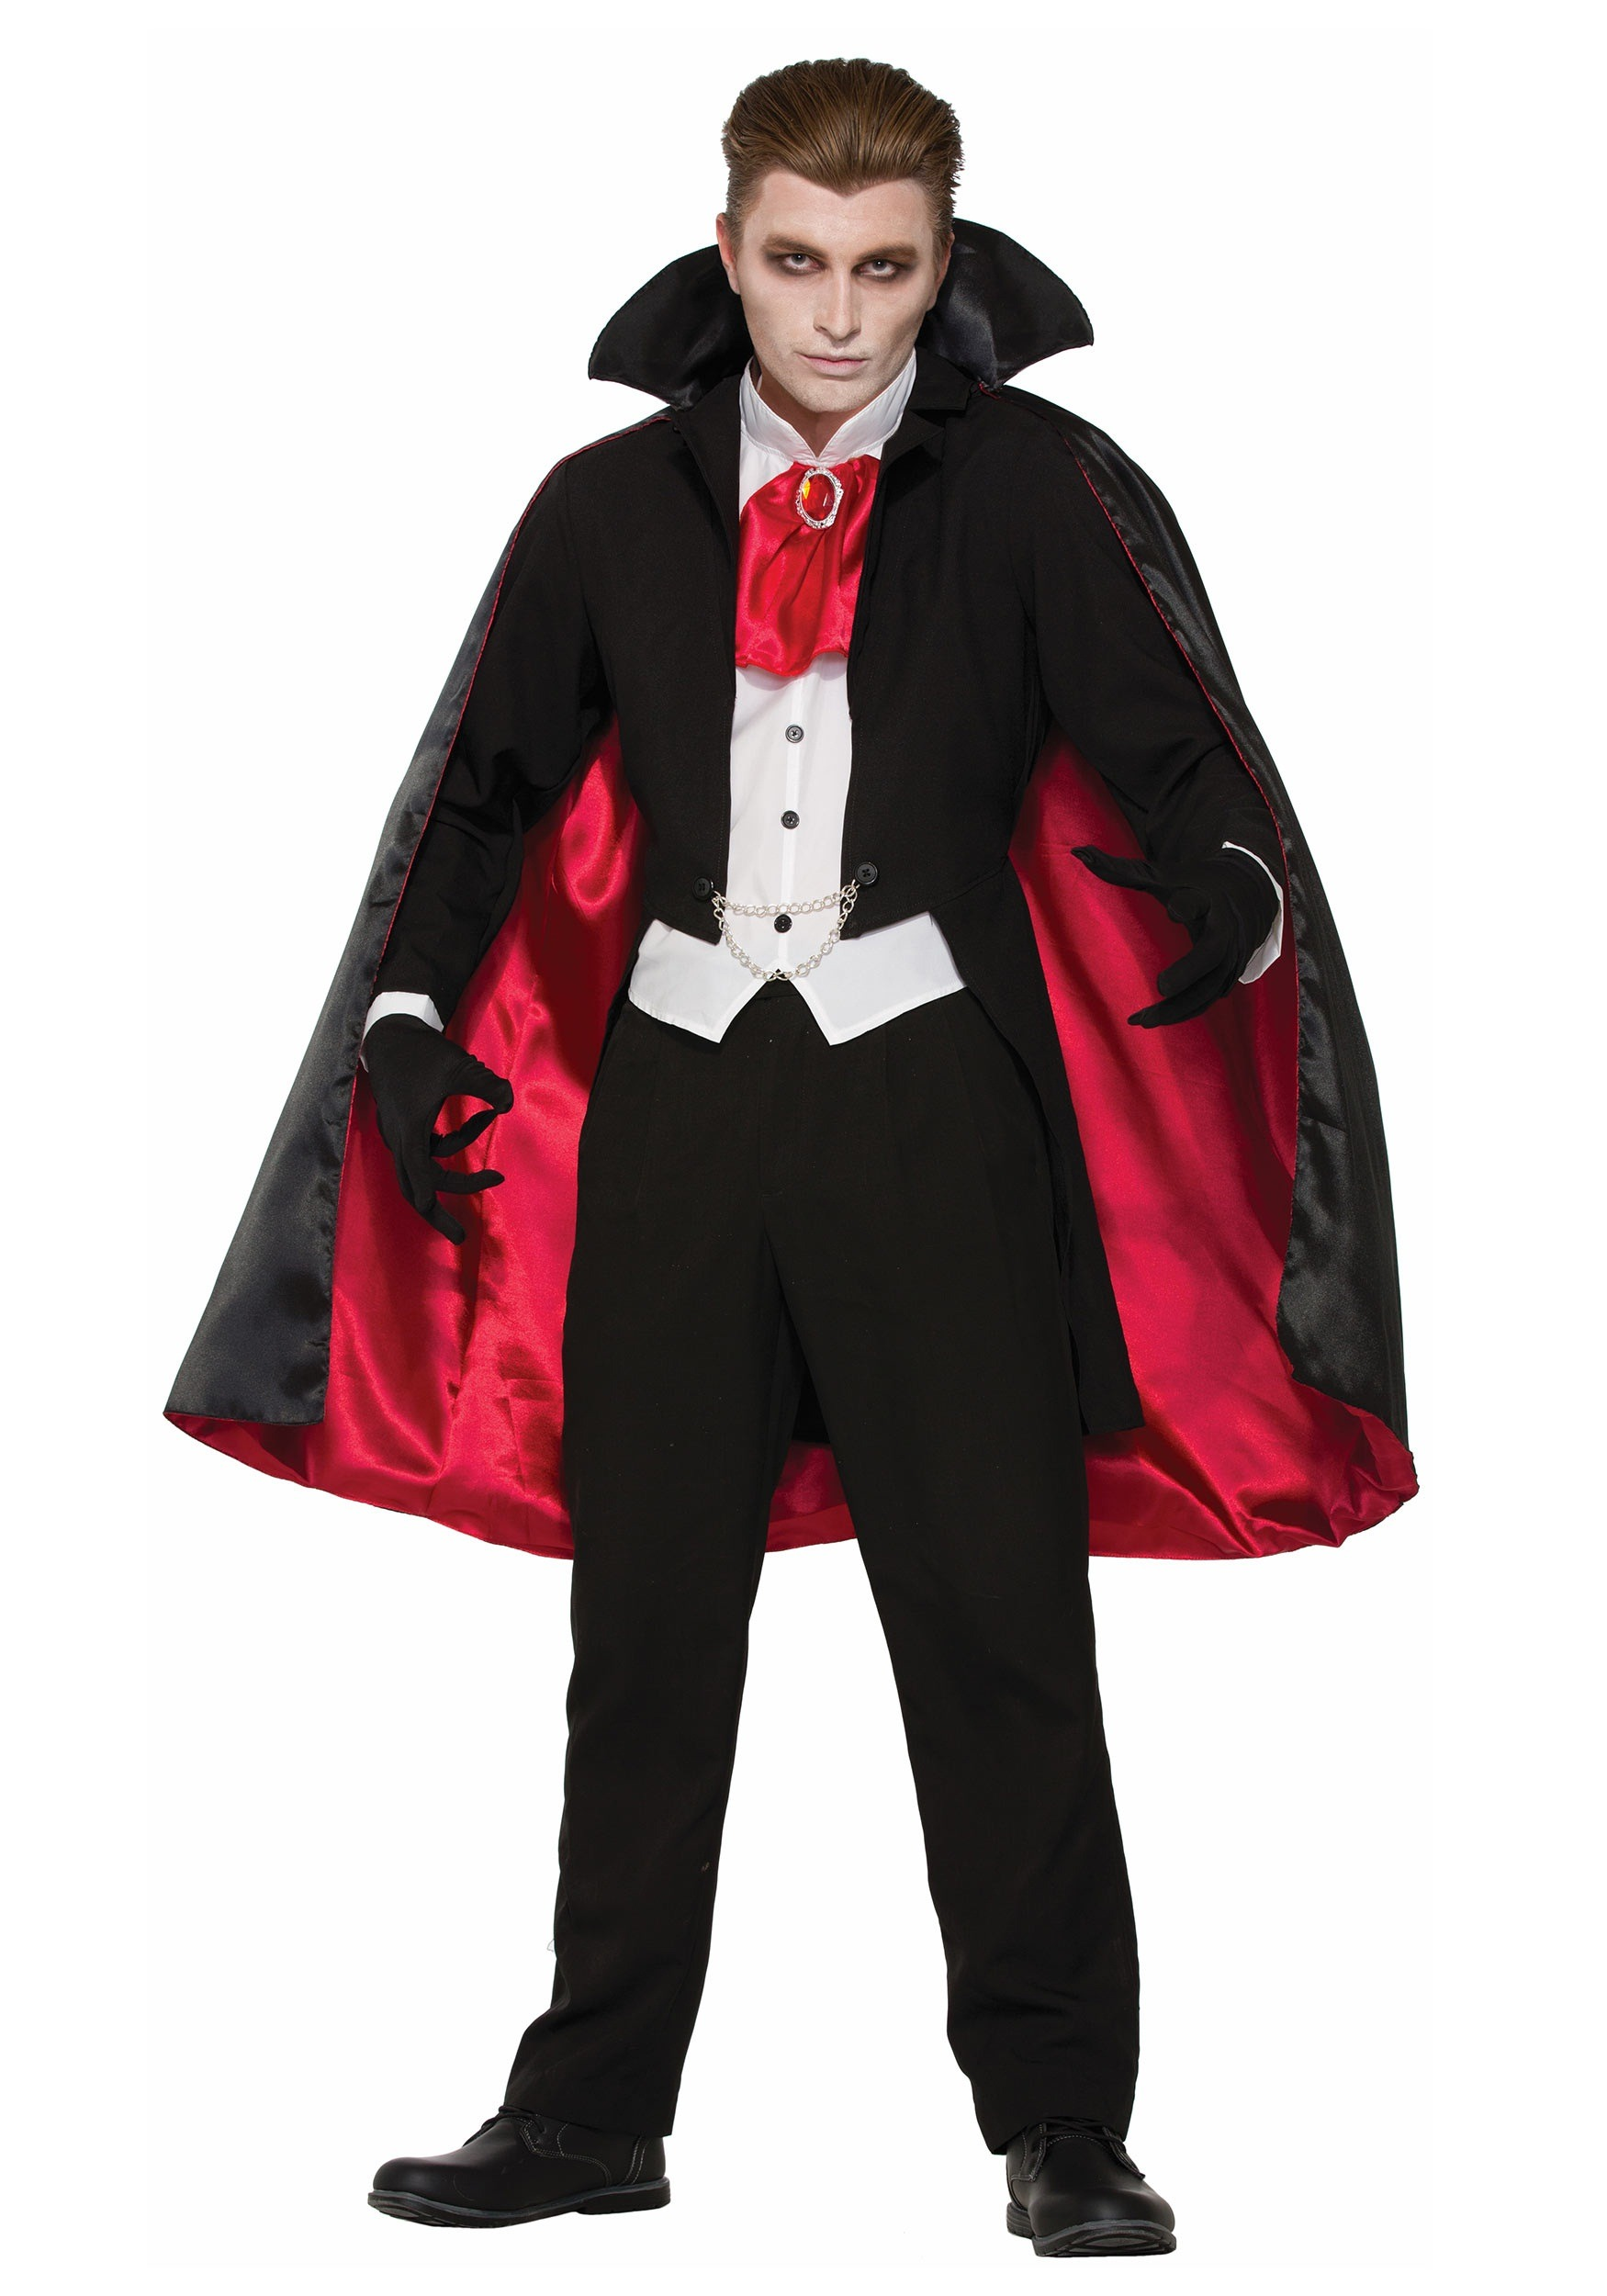 Add On Floor Plans The Count Vampire Costume